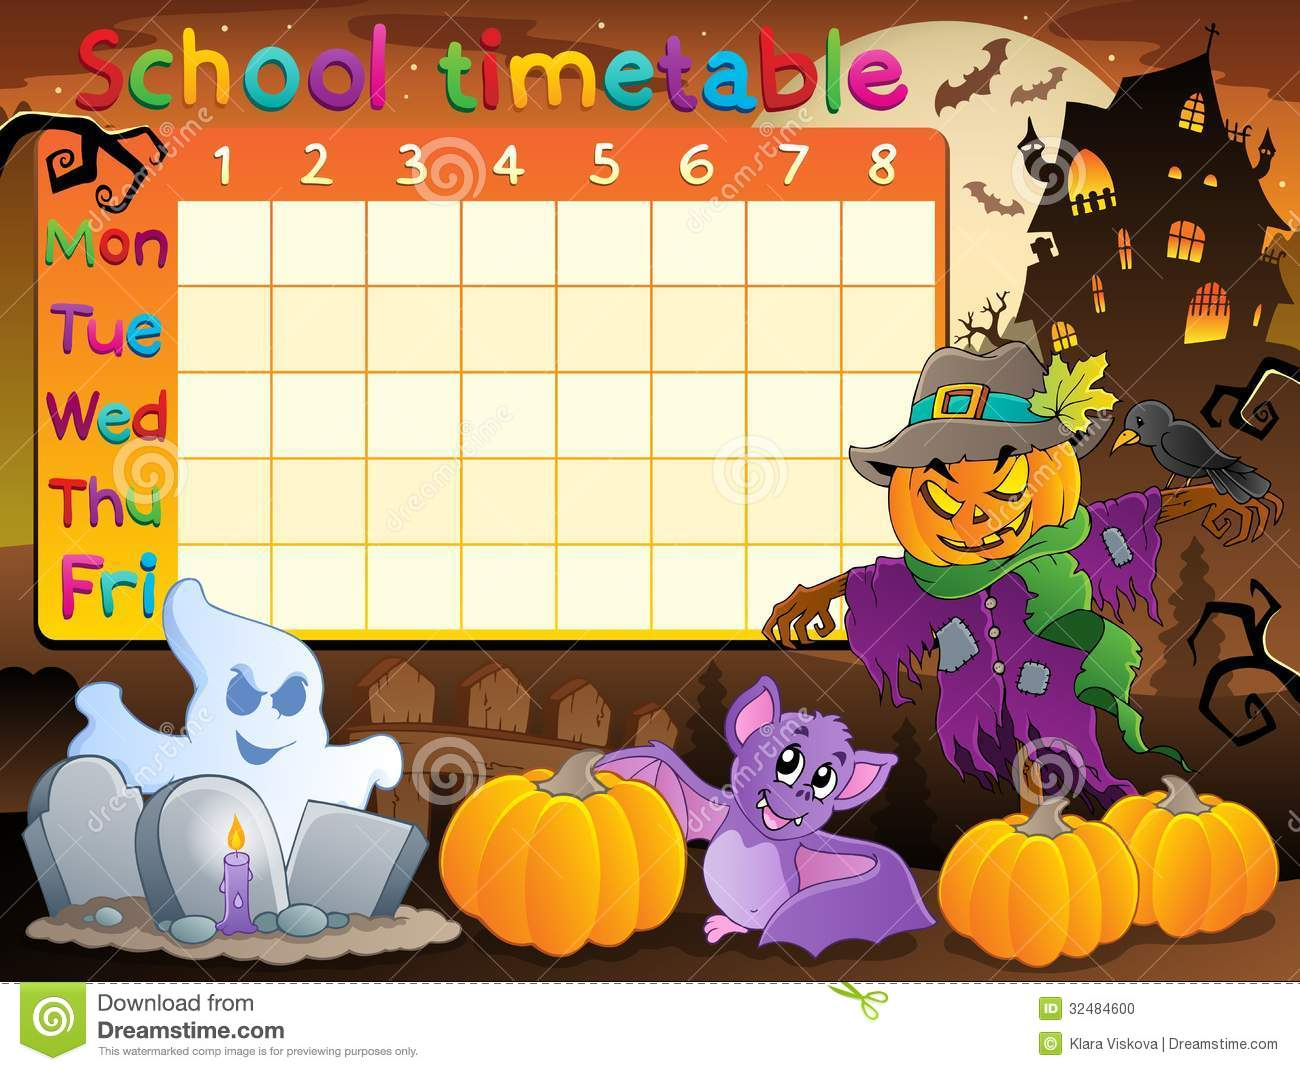 School Timetable Topic Image 2 Photo Image 32484600 – School Time Table Designs